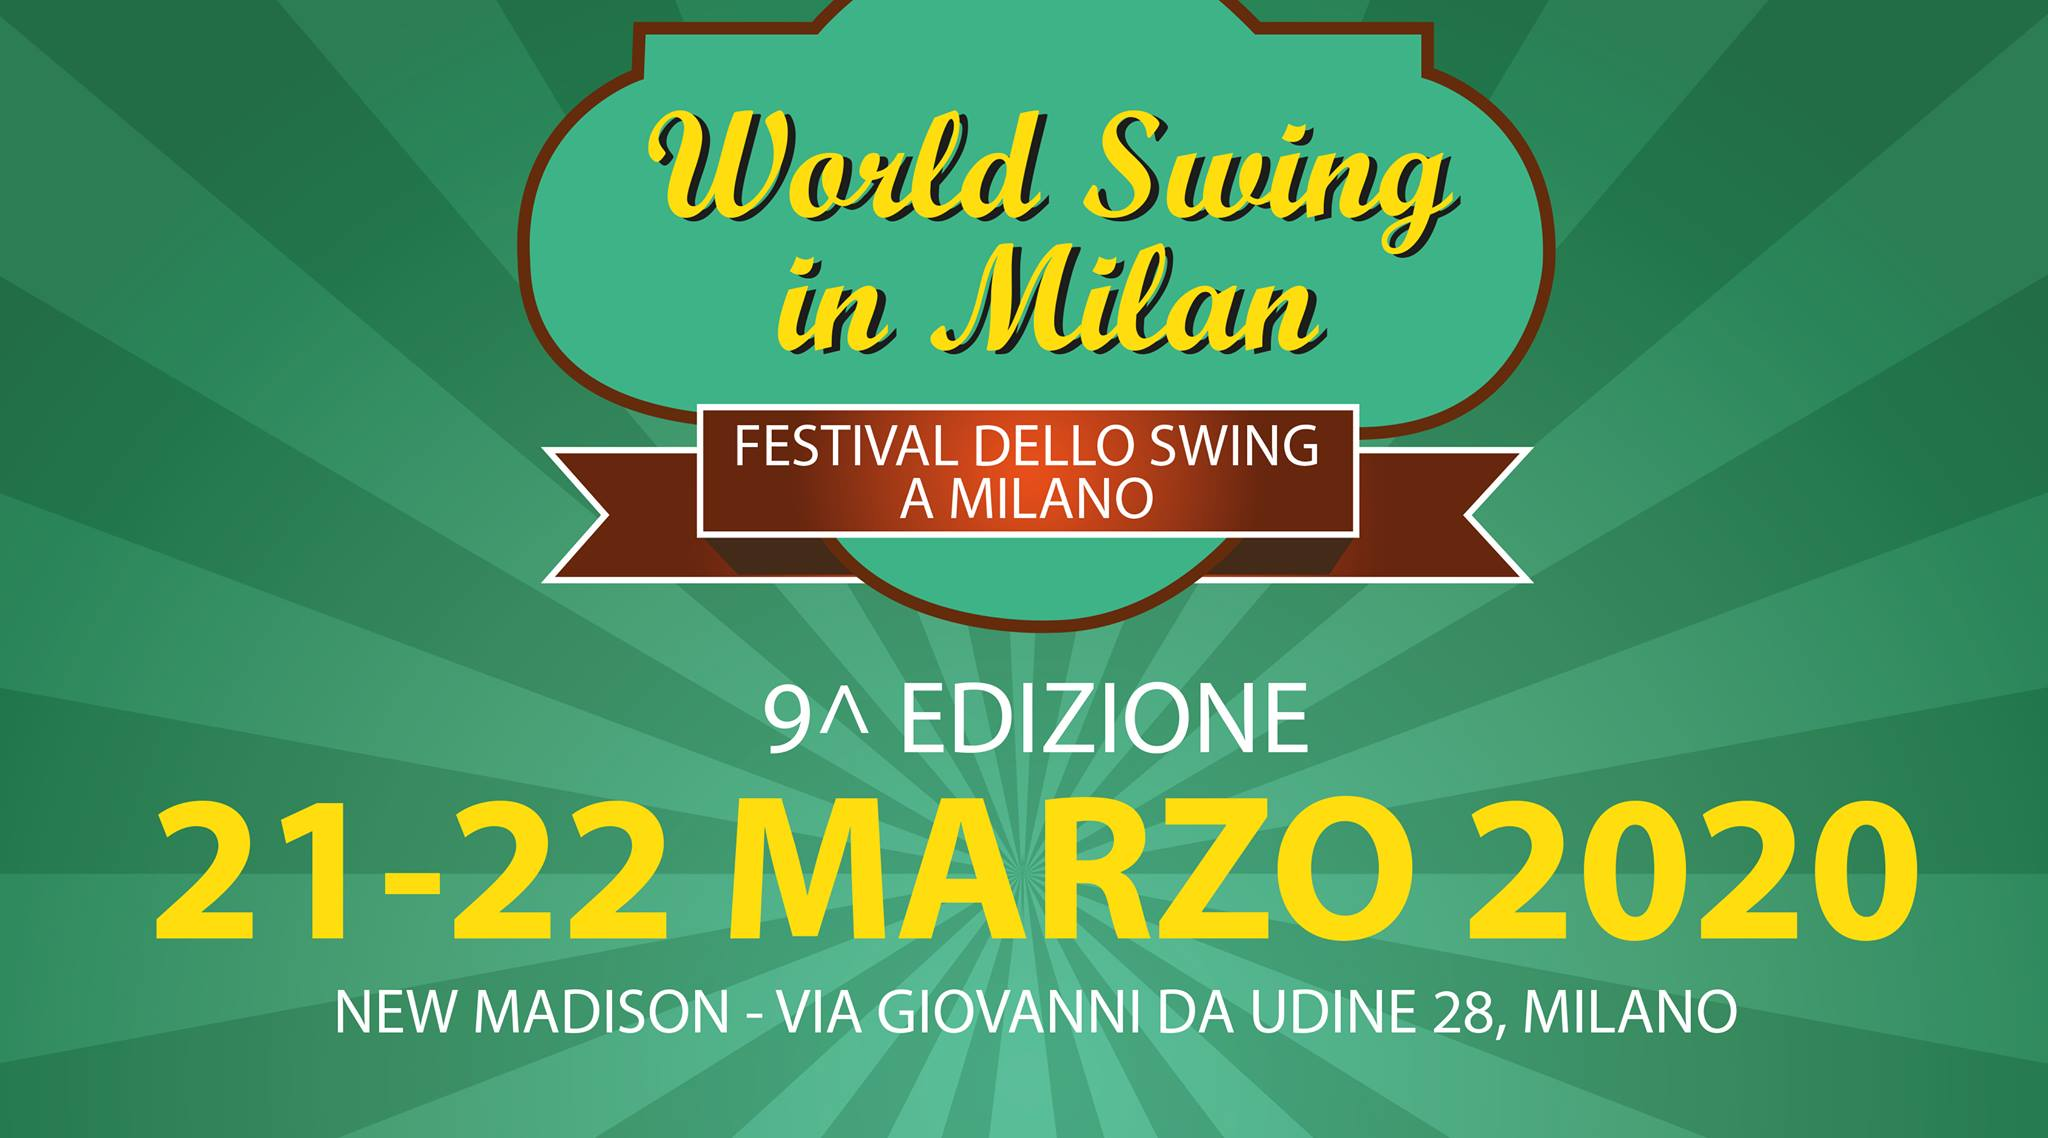 World Swing in Milan